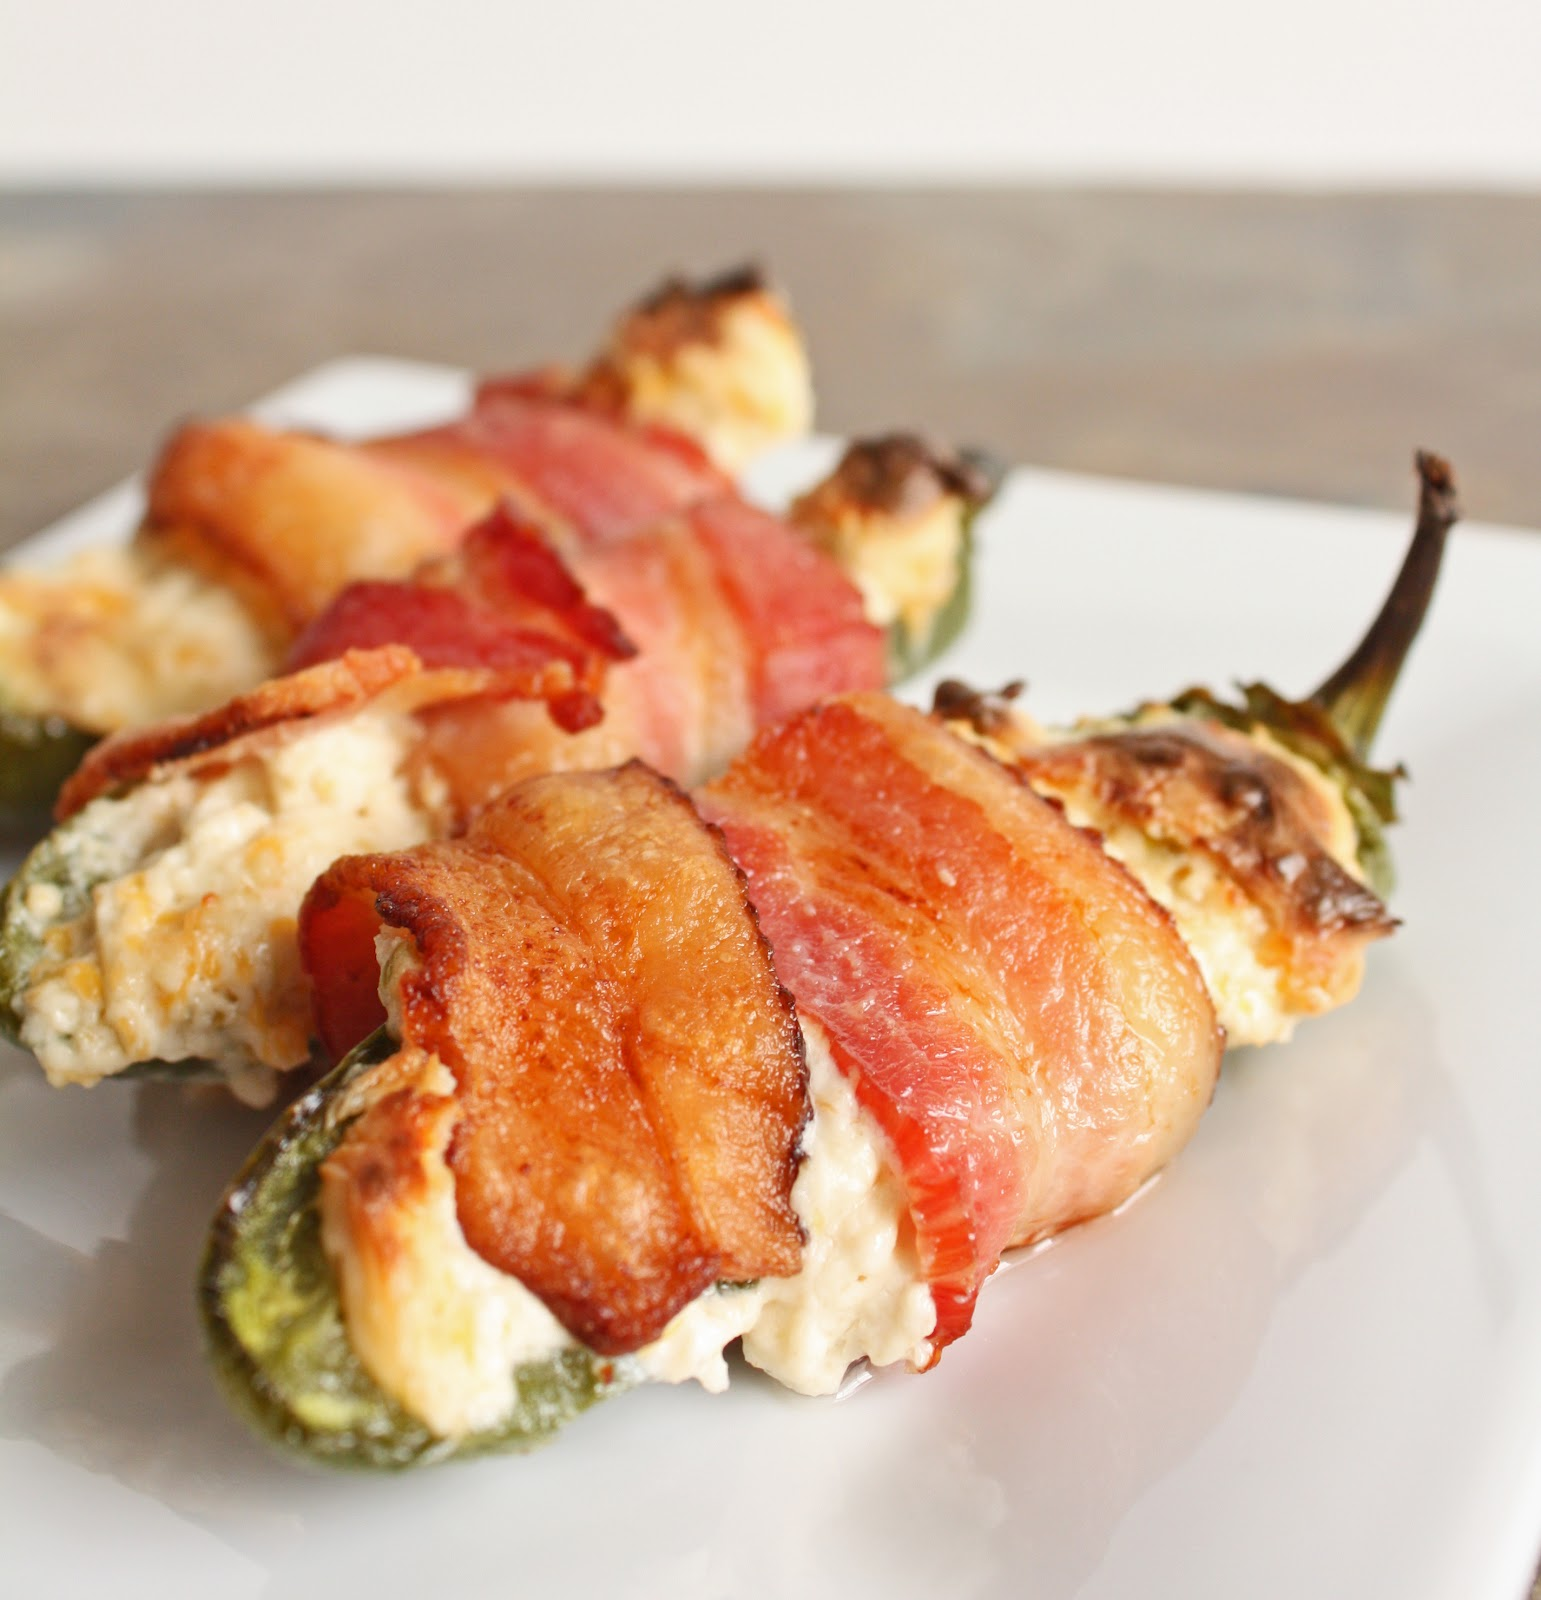 bacon wrapped low carb jalapeño popper recipe